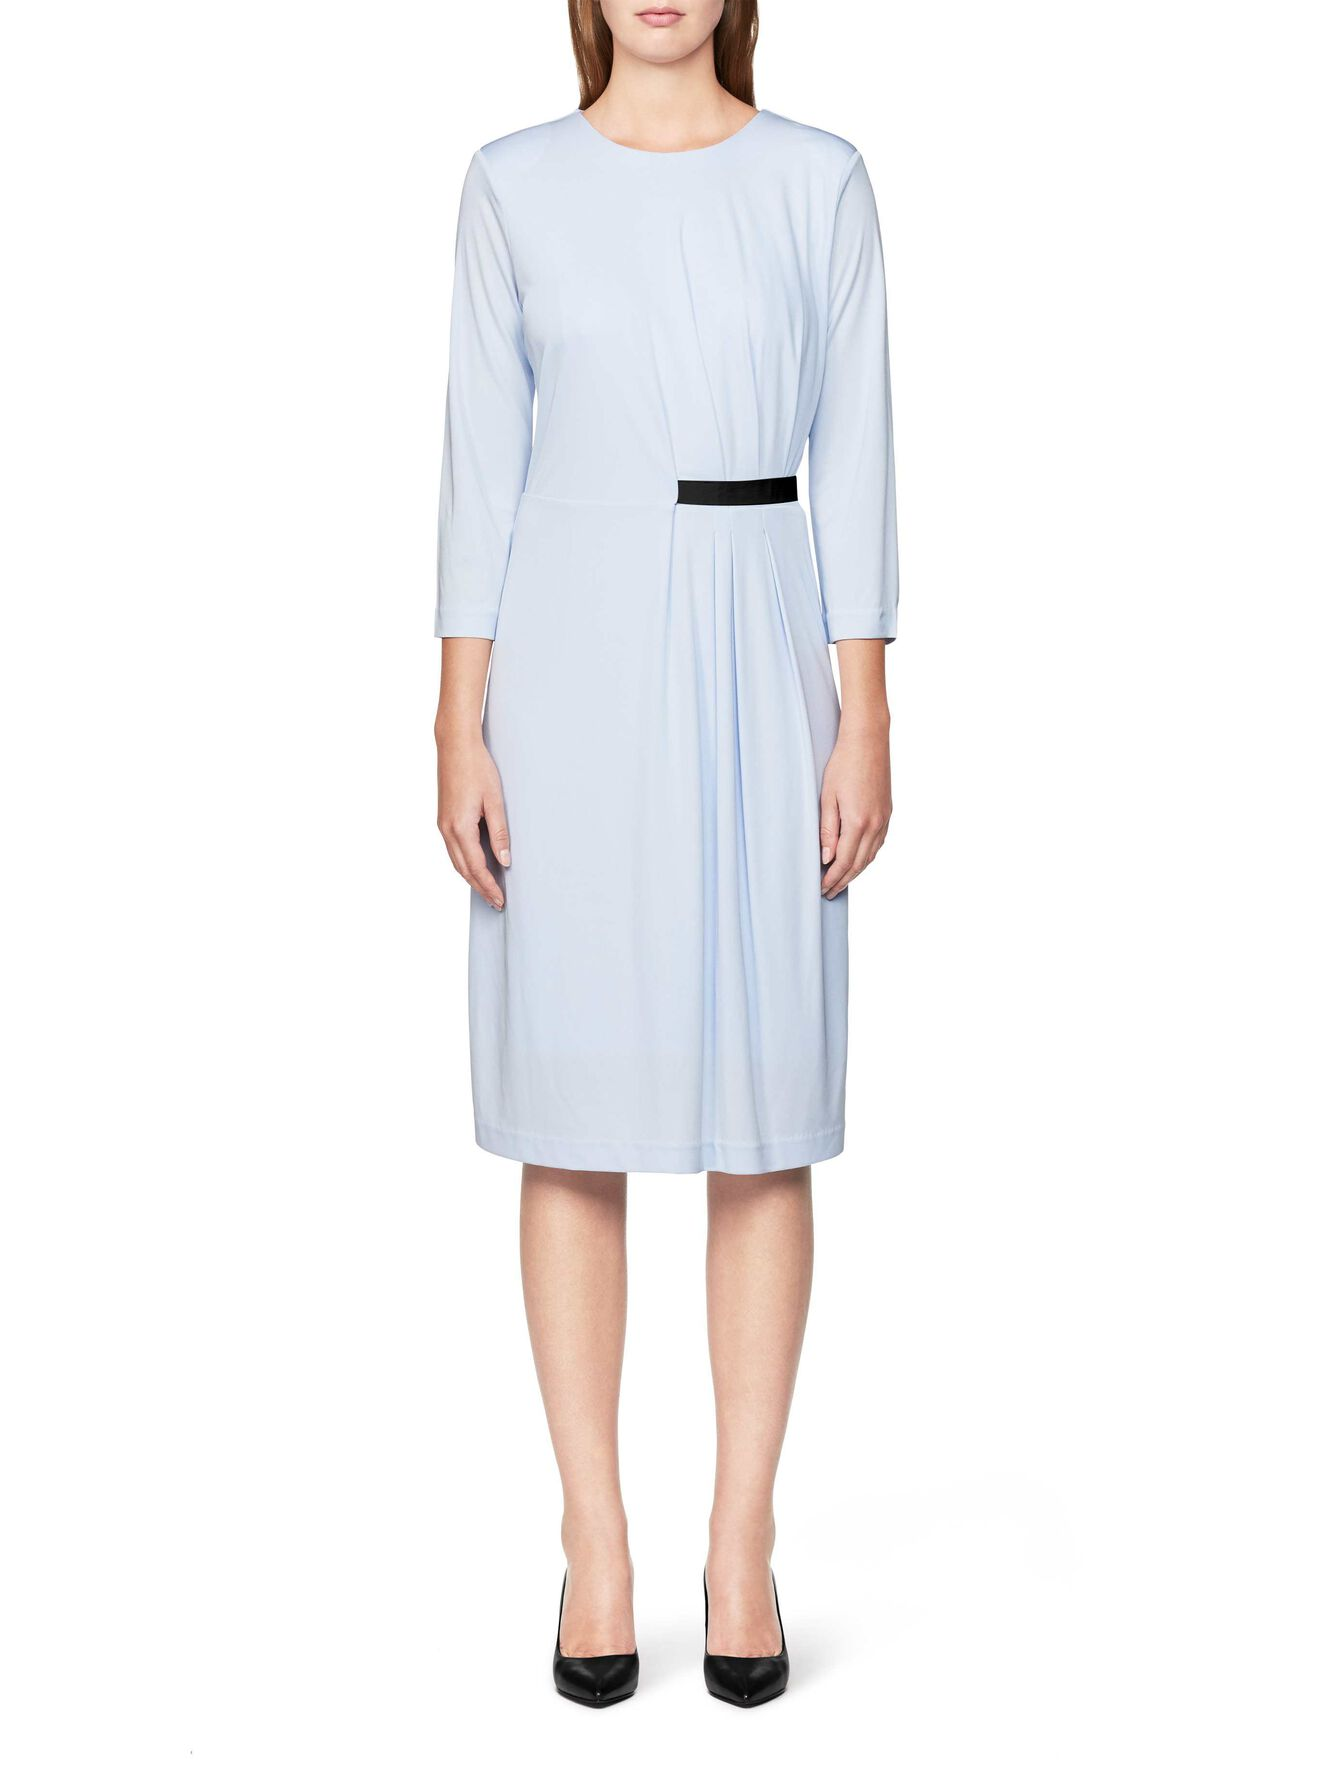 PALOMA KLEID in Art Deco Blue from Tiger of Sweden